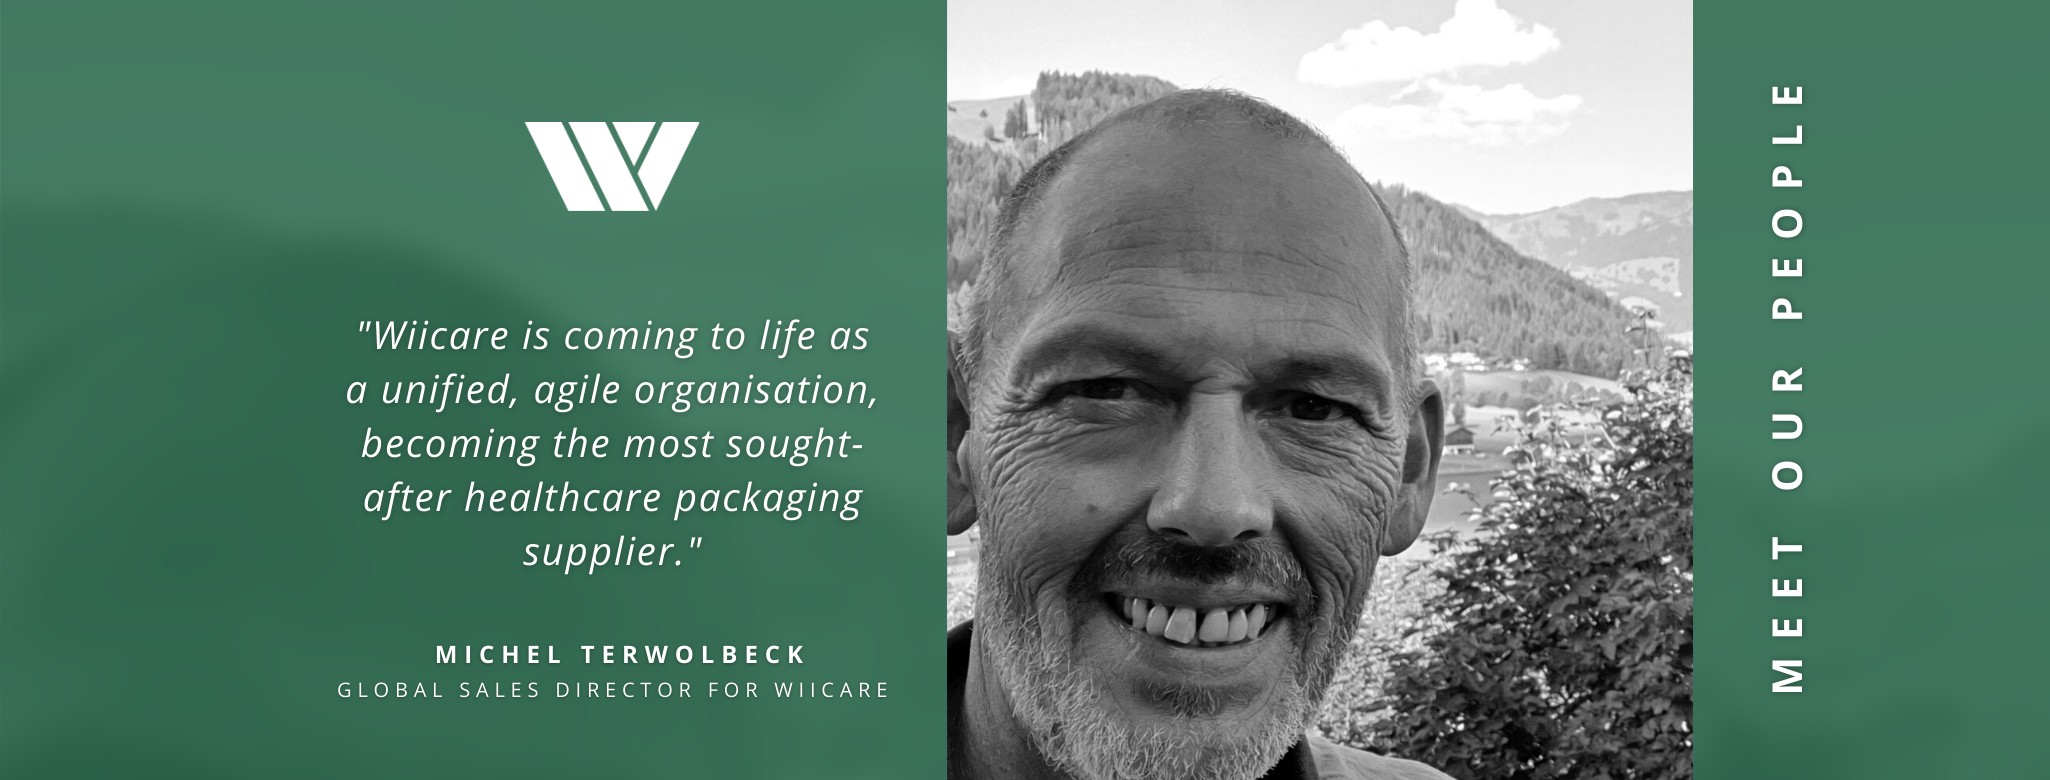 Meet Our People Michel Terwolbeck